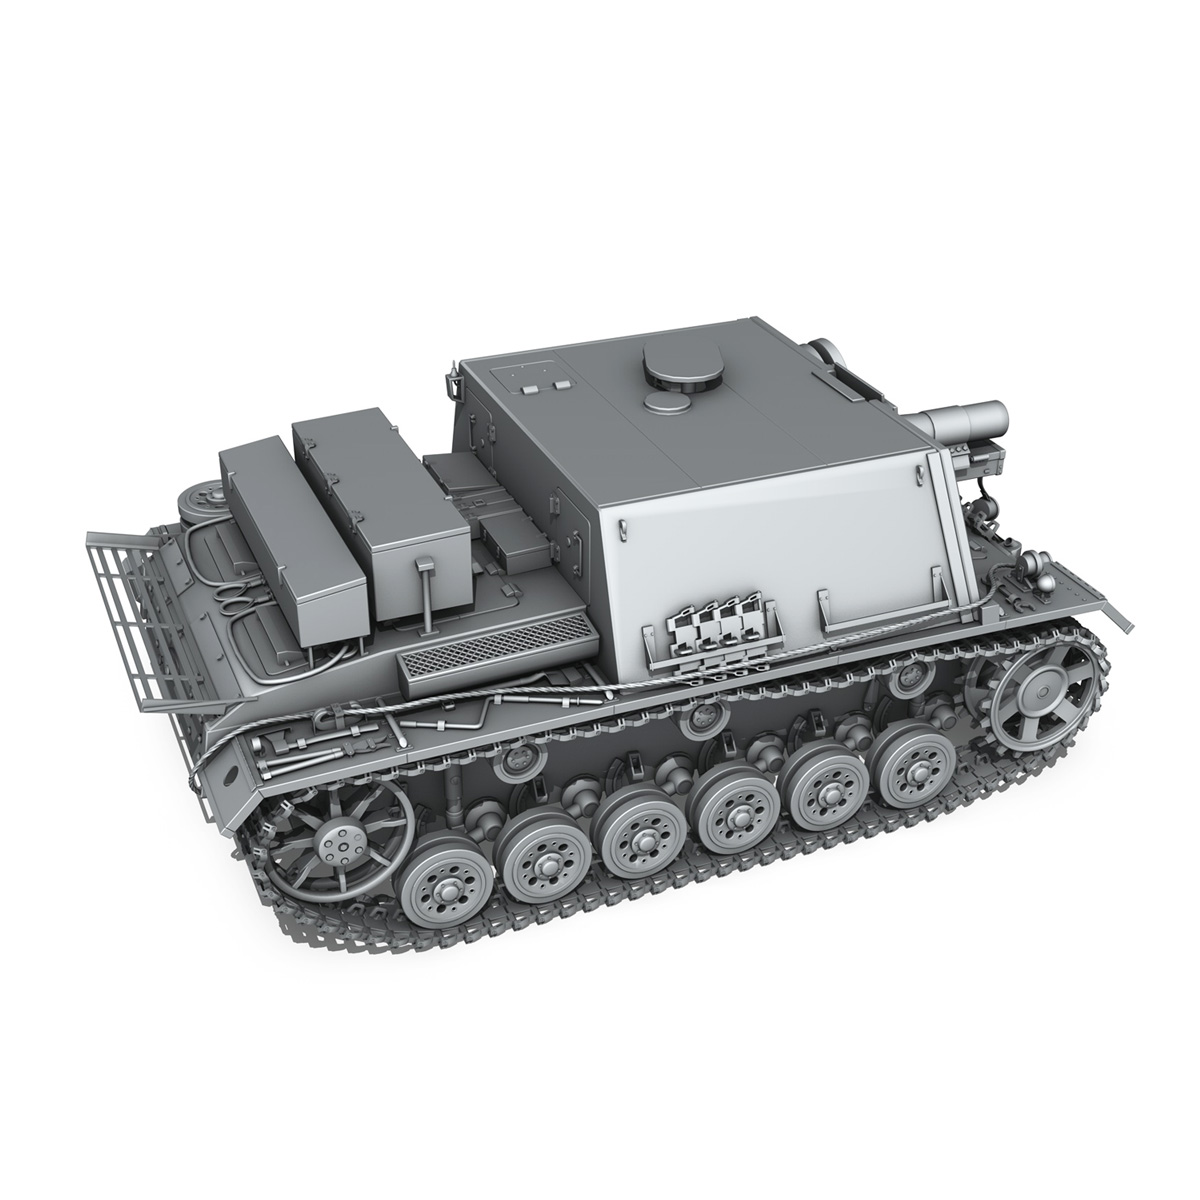 stuig 33b – self-propelled heavy infantry gun 3d model 3ds fbx c4d lwo obj 188844